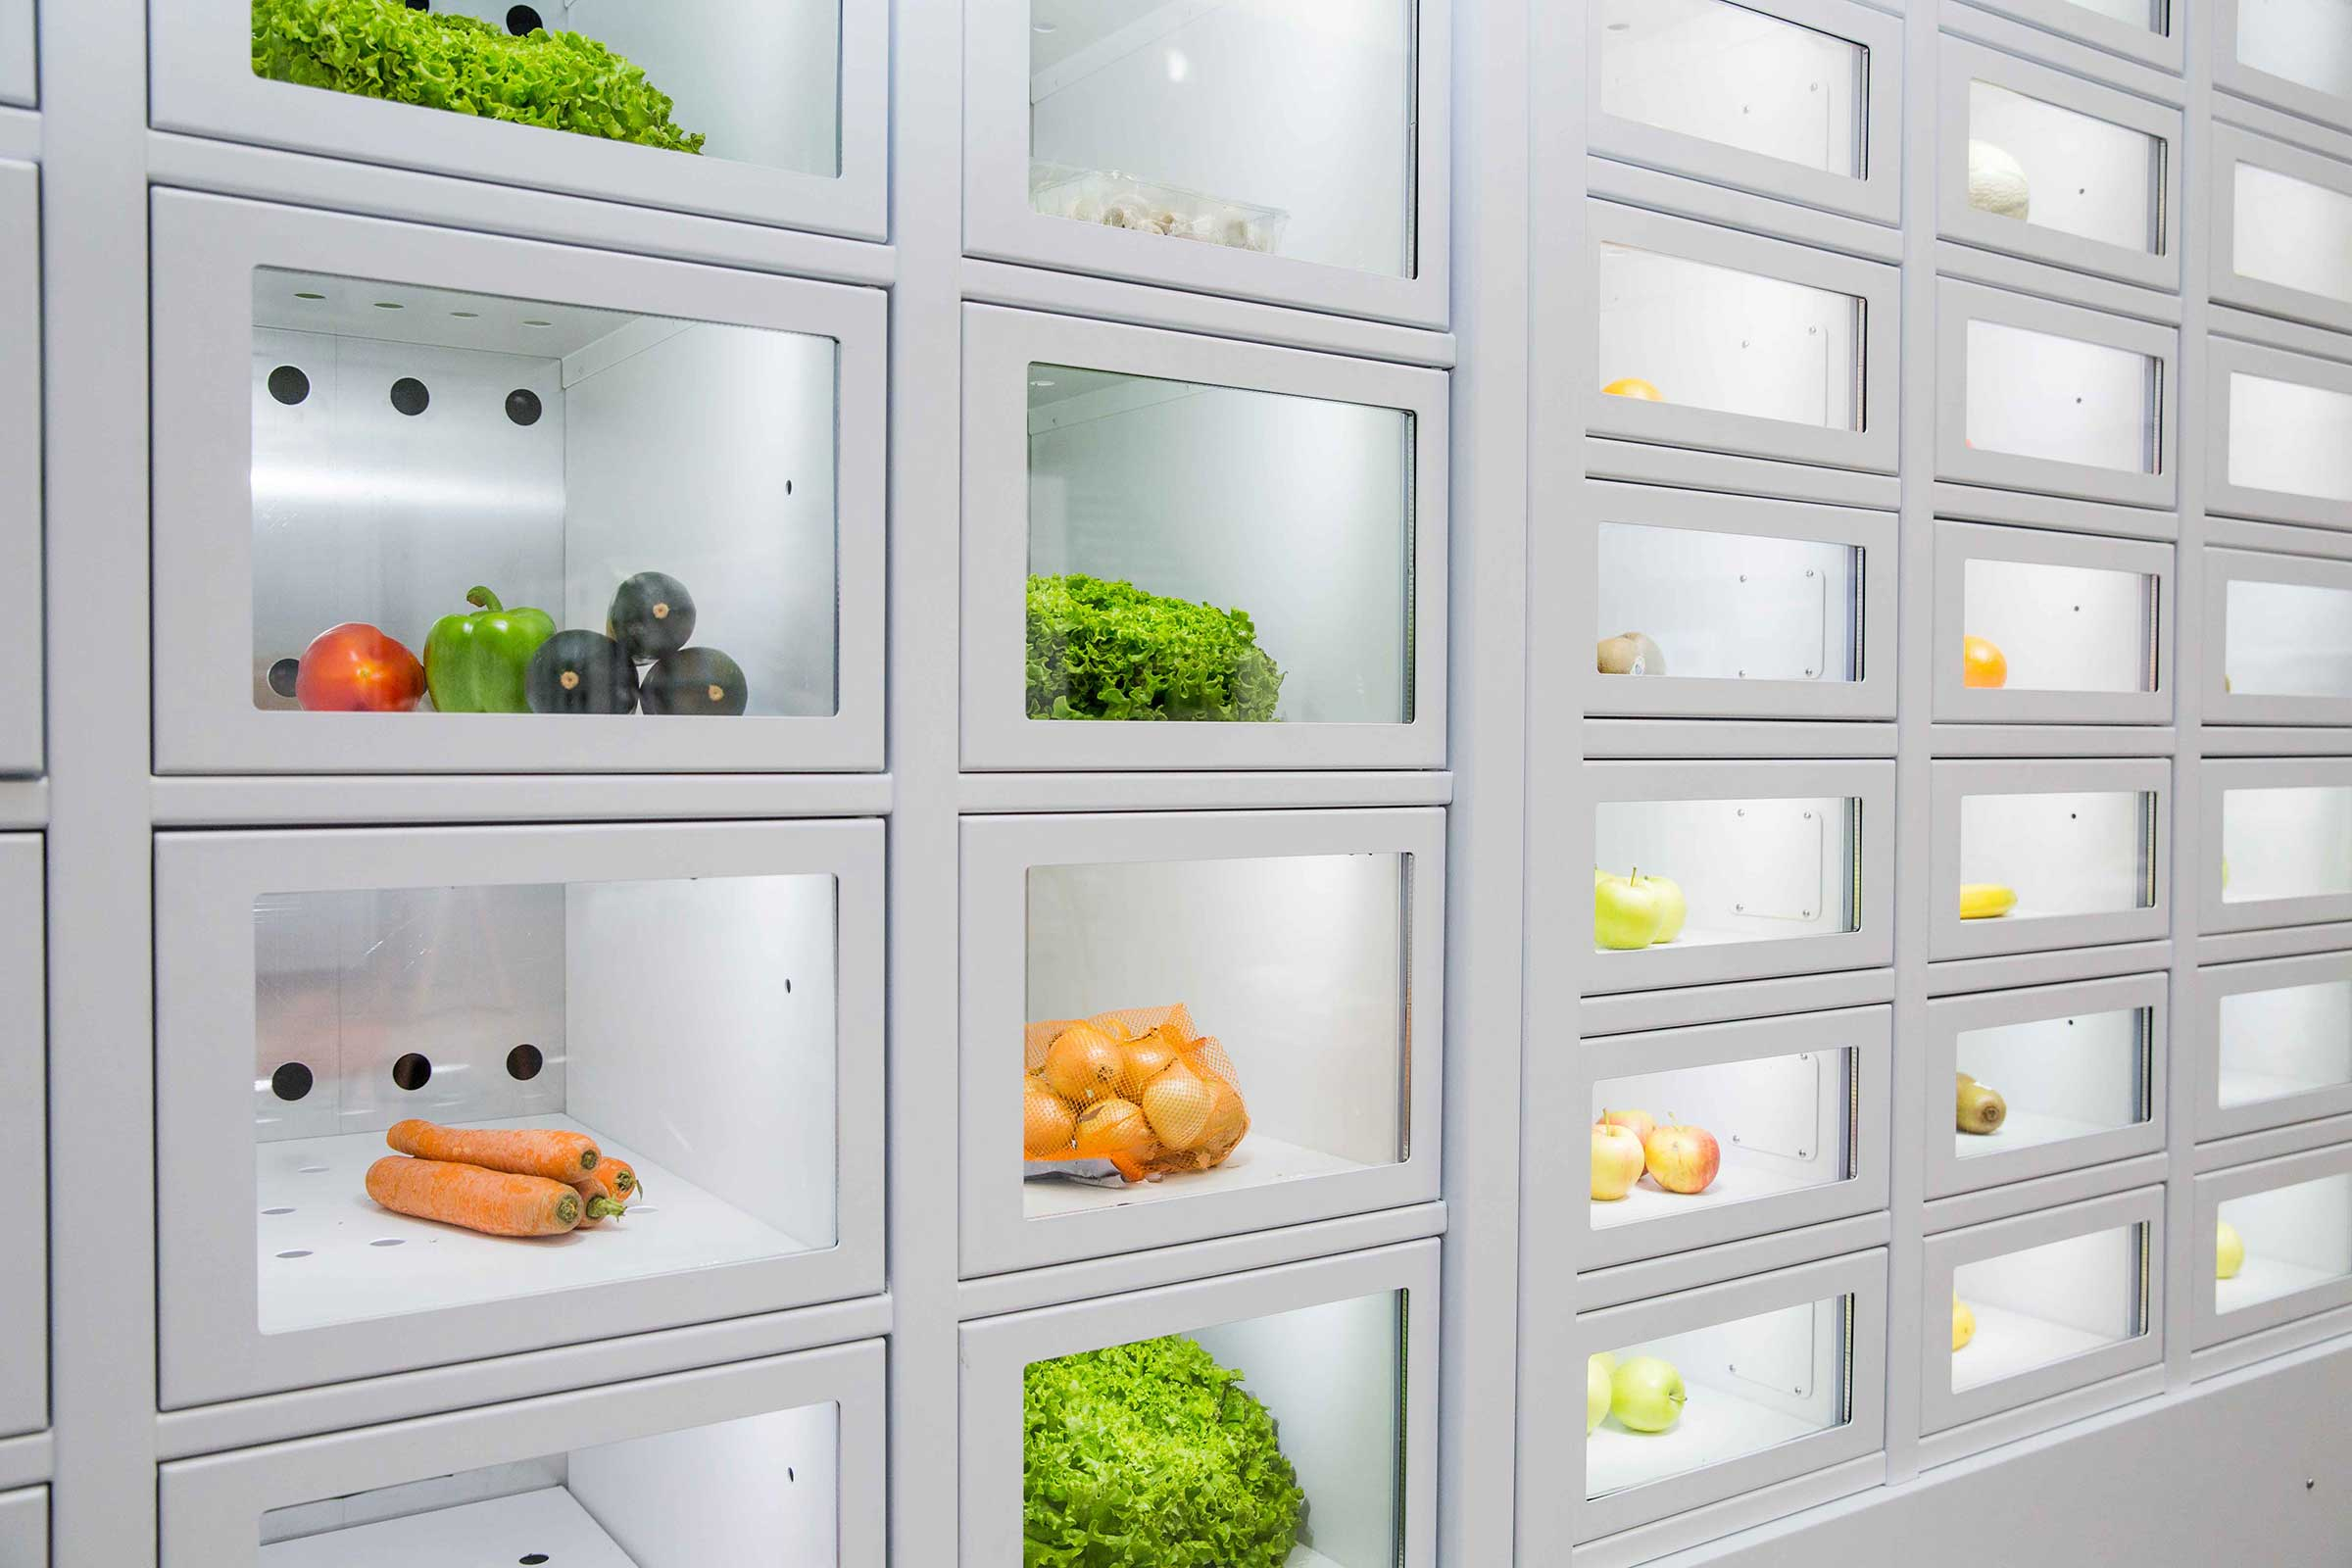 Vegetables in a French Locker, the automatic distributor of independent producers